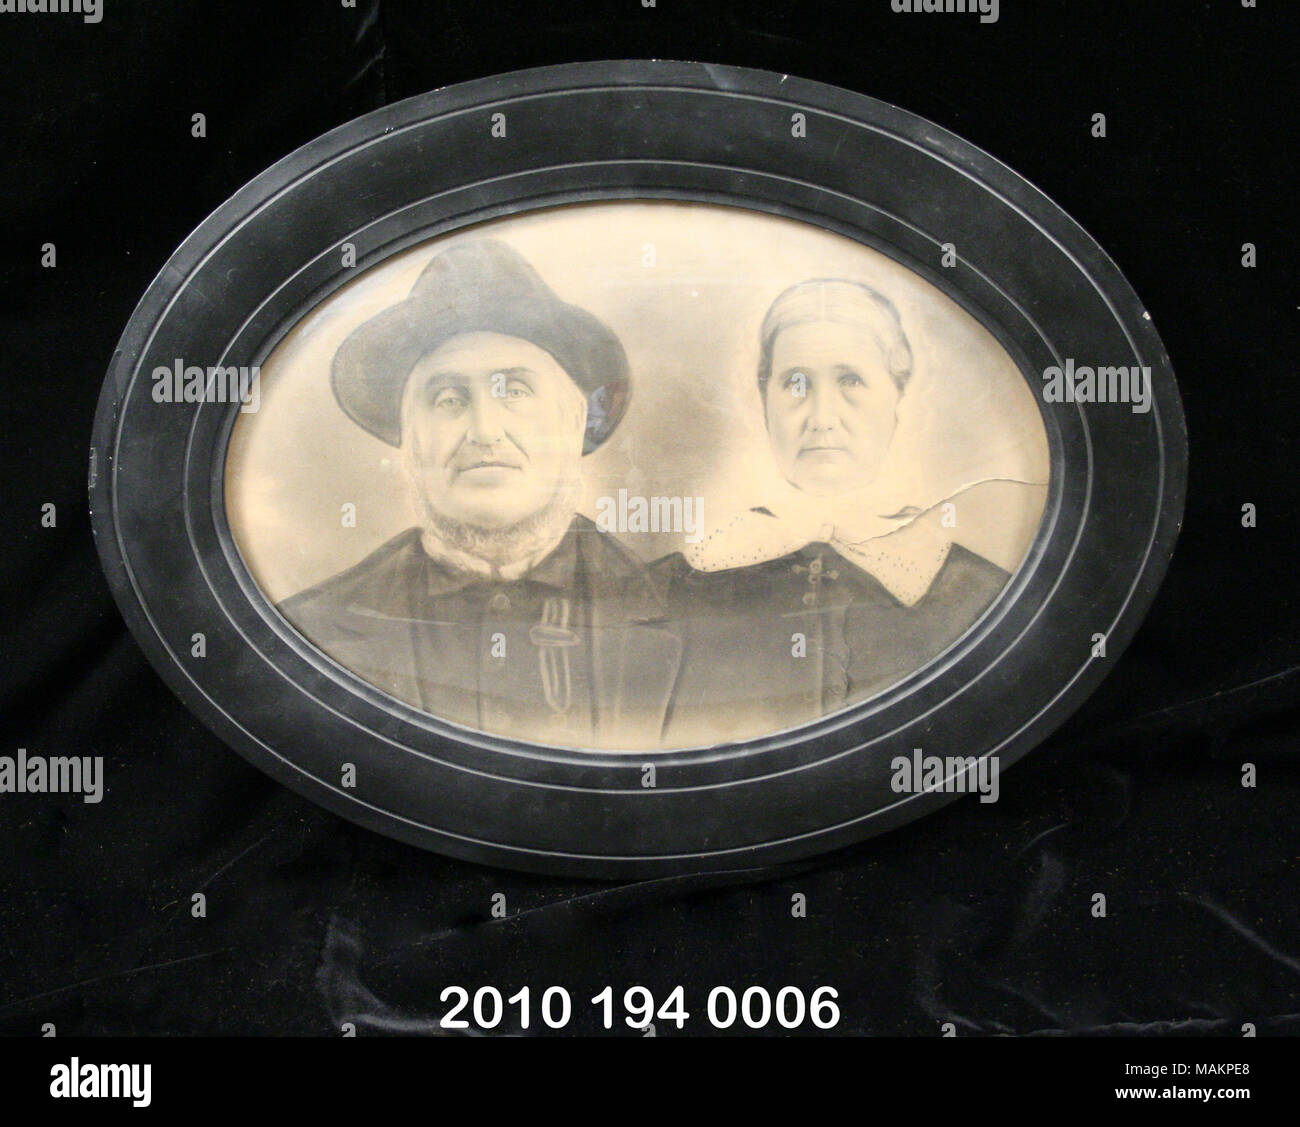 Photograph Of Vohs Family In Oval Wooden Frame Painted Black Convex